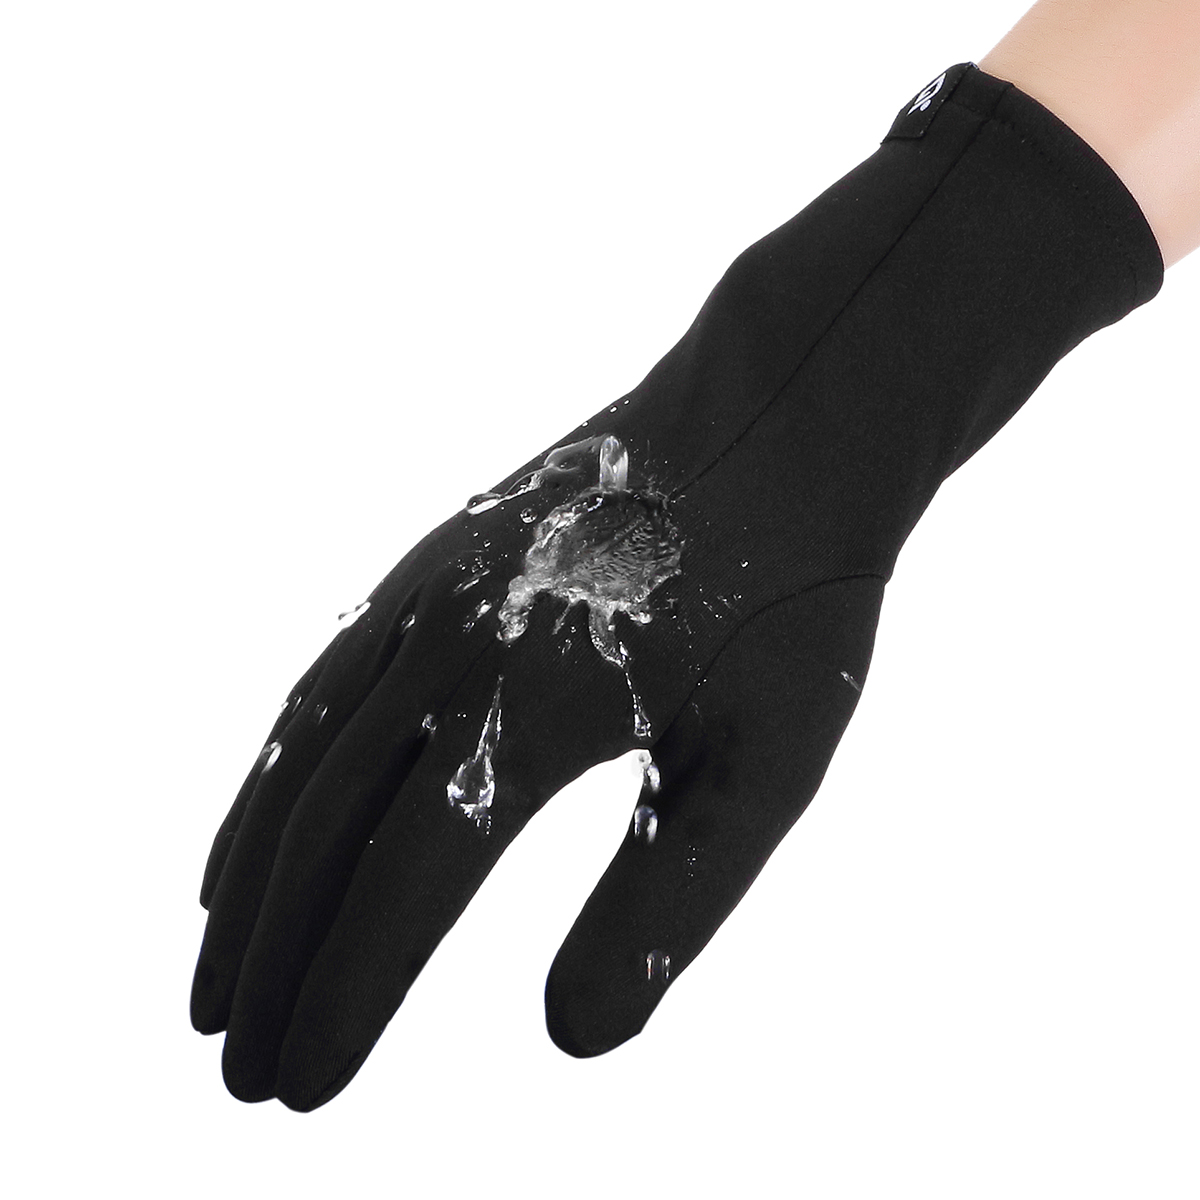 Touch Screen Winter Warm Gloves Windproof Waterproof Anti-slip Thermal For Motorcycle Bike Ski